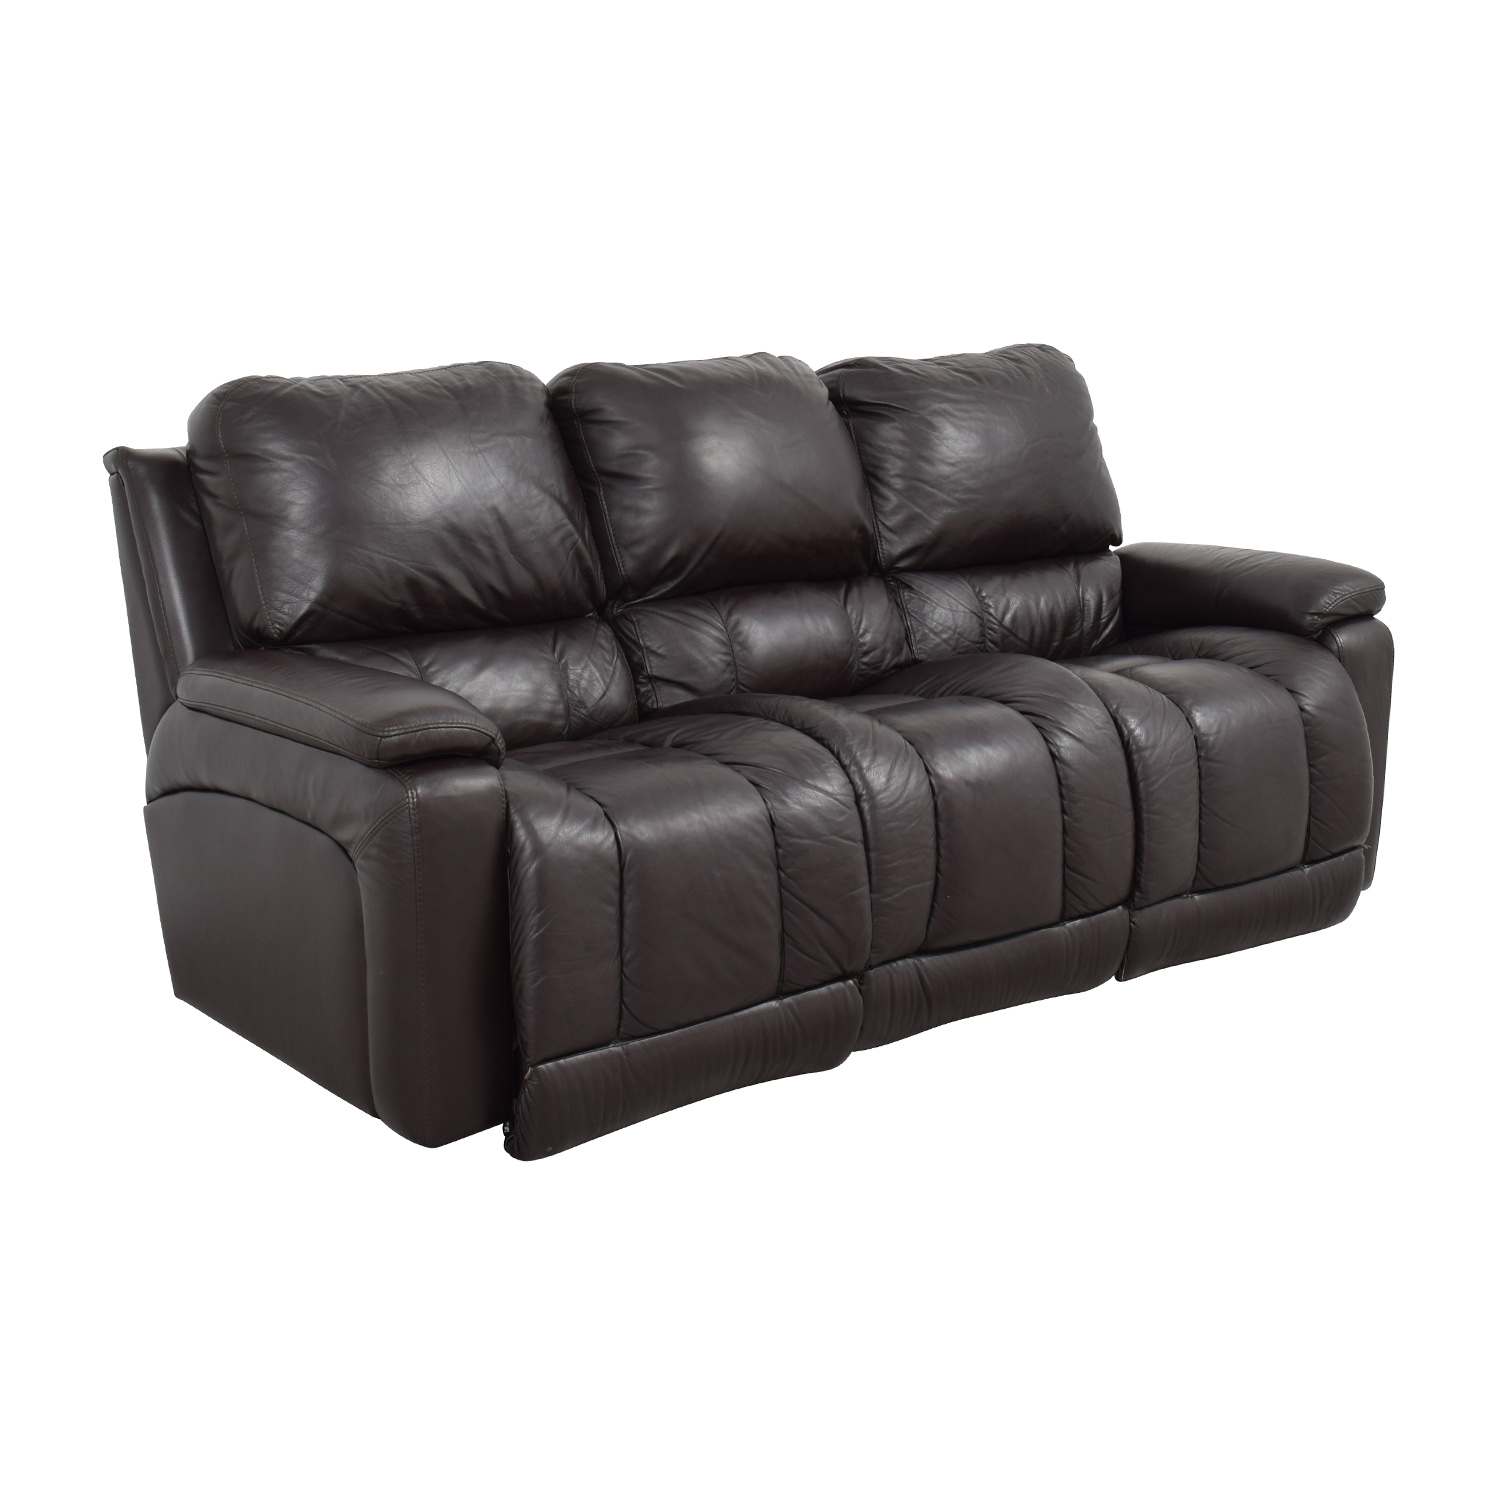 ... buy La-Z-Boy Brown Leather Reclining Sofa La-Z-Boy Classic ...  sc 1 st  Furnishare & 71% OFF - La-Z-Boy La-Z-Boy Brown Leather Reclining Sofa / Sofas islam-shia.org